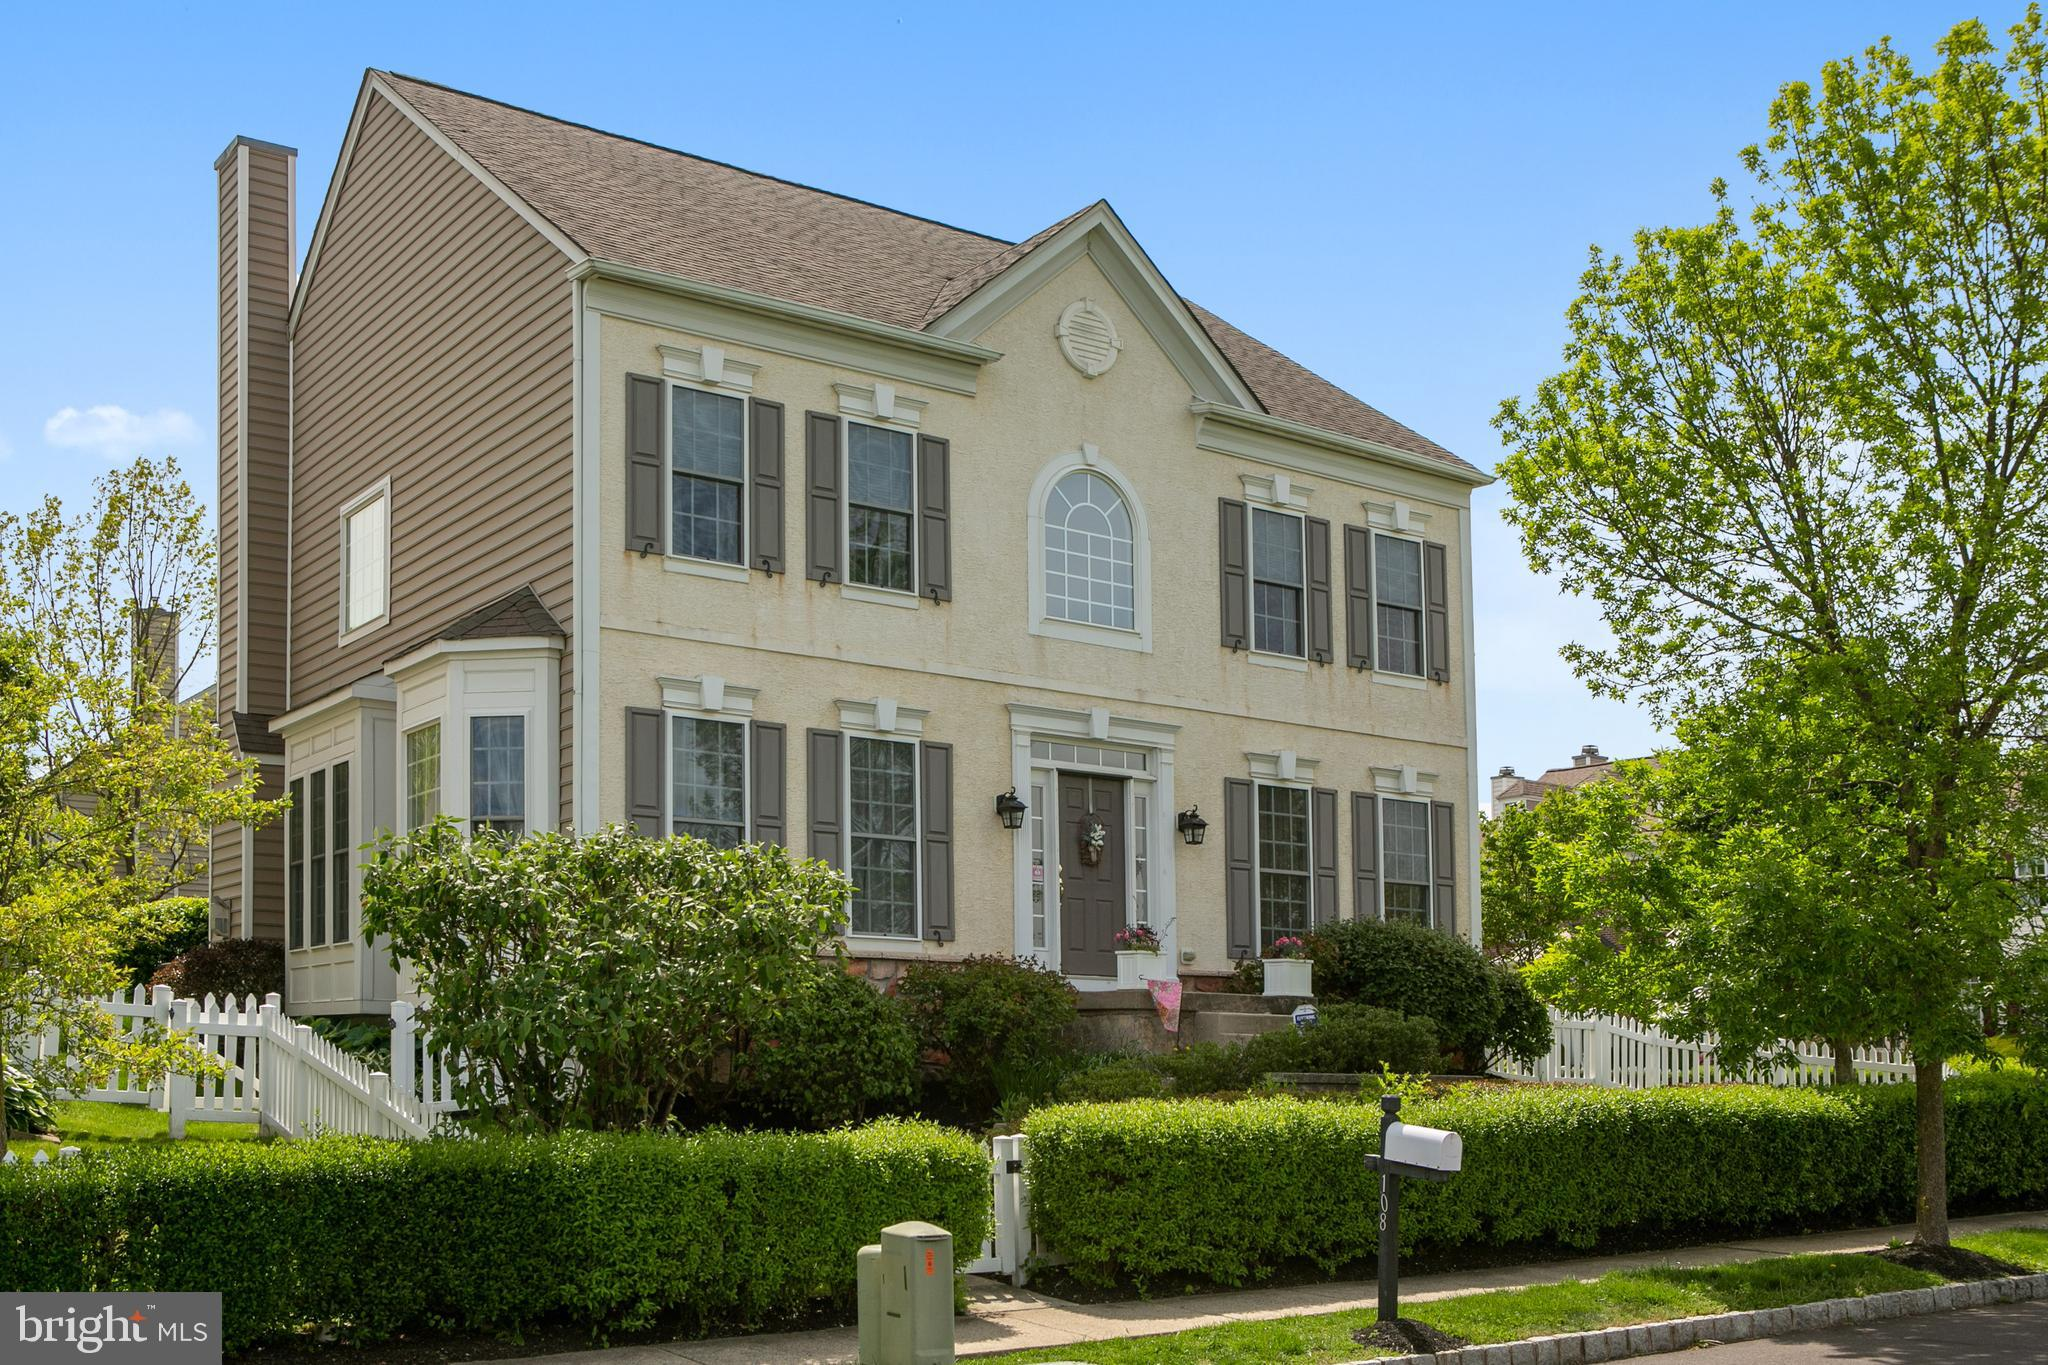 108 Pipers Inn Drive, Fountainville, PA 18923